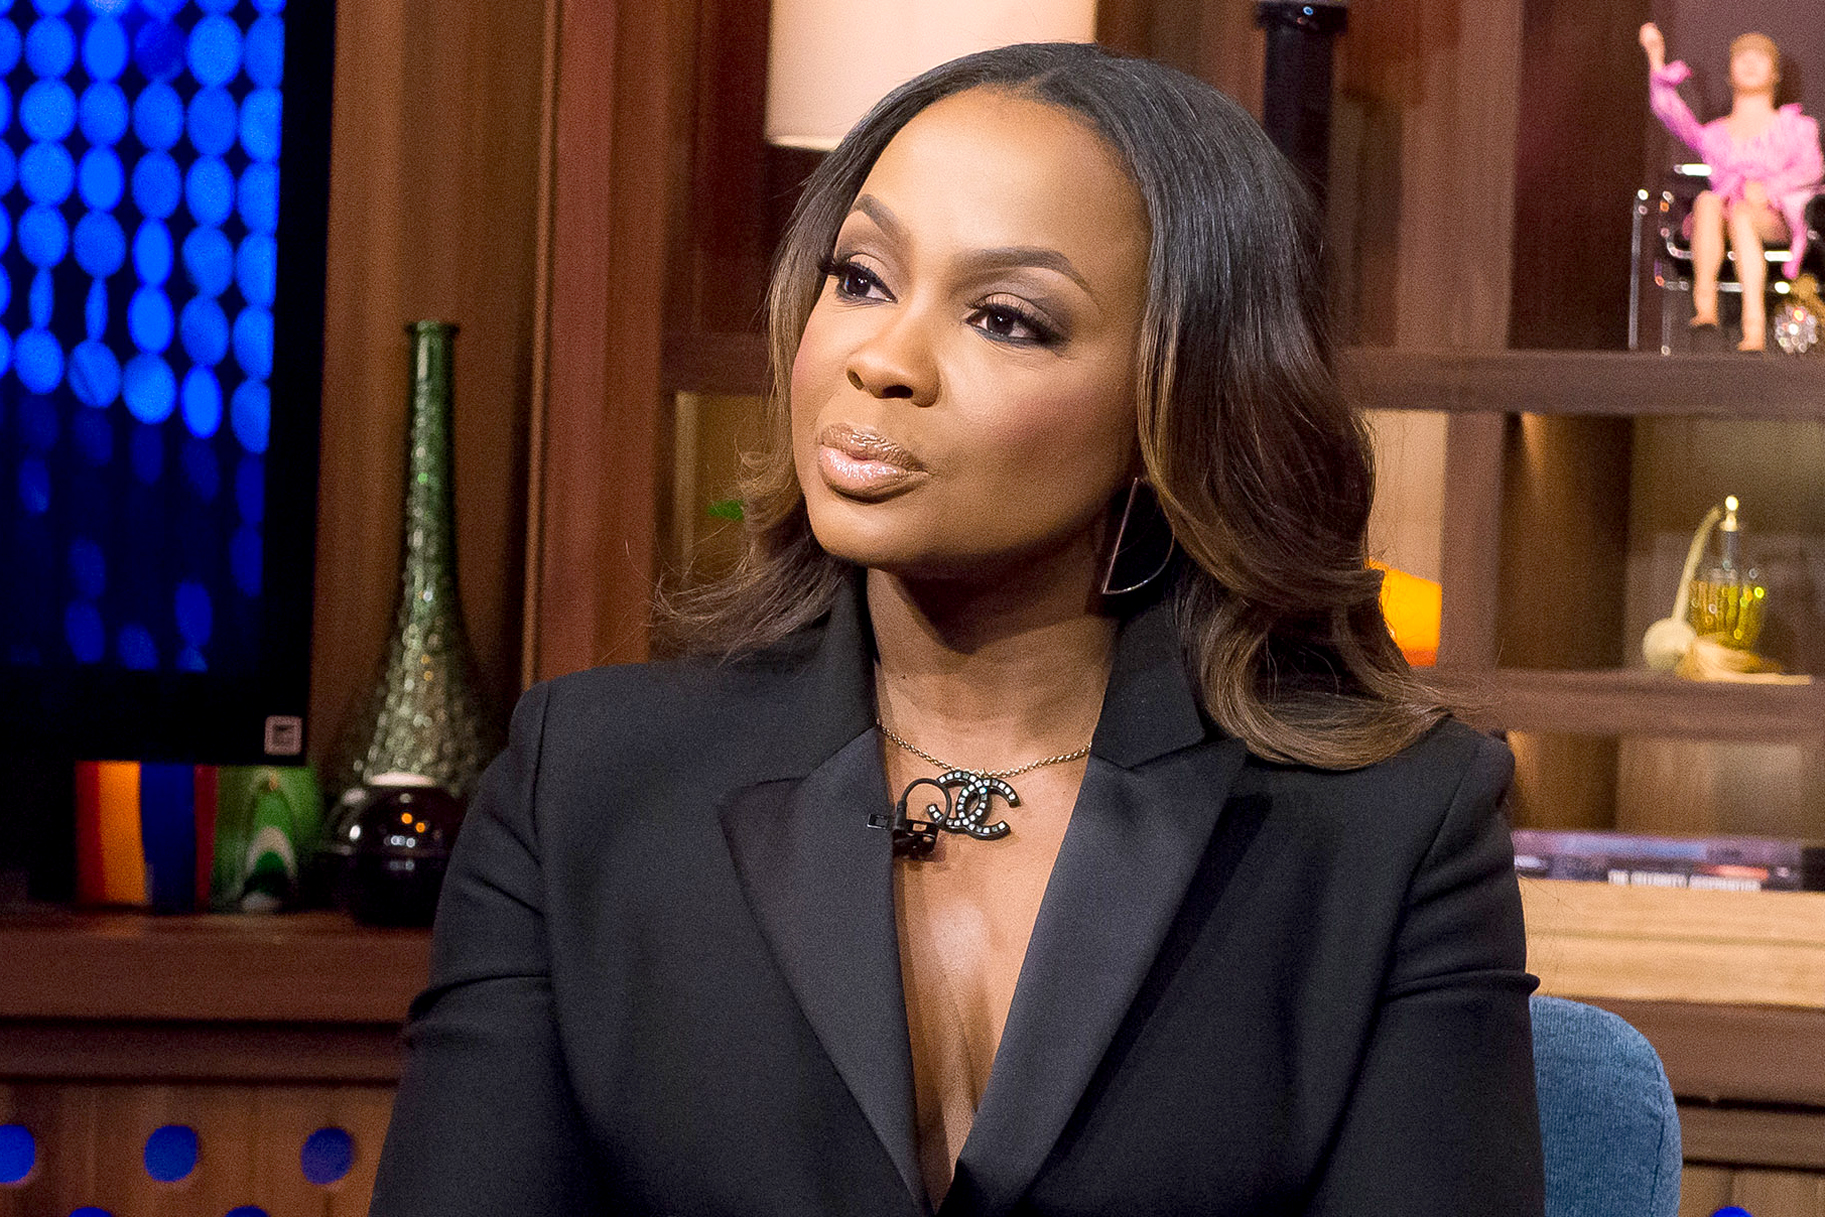 Phaedra Parks Shares An Emotional Post About The Late Ja'Net DuBois